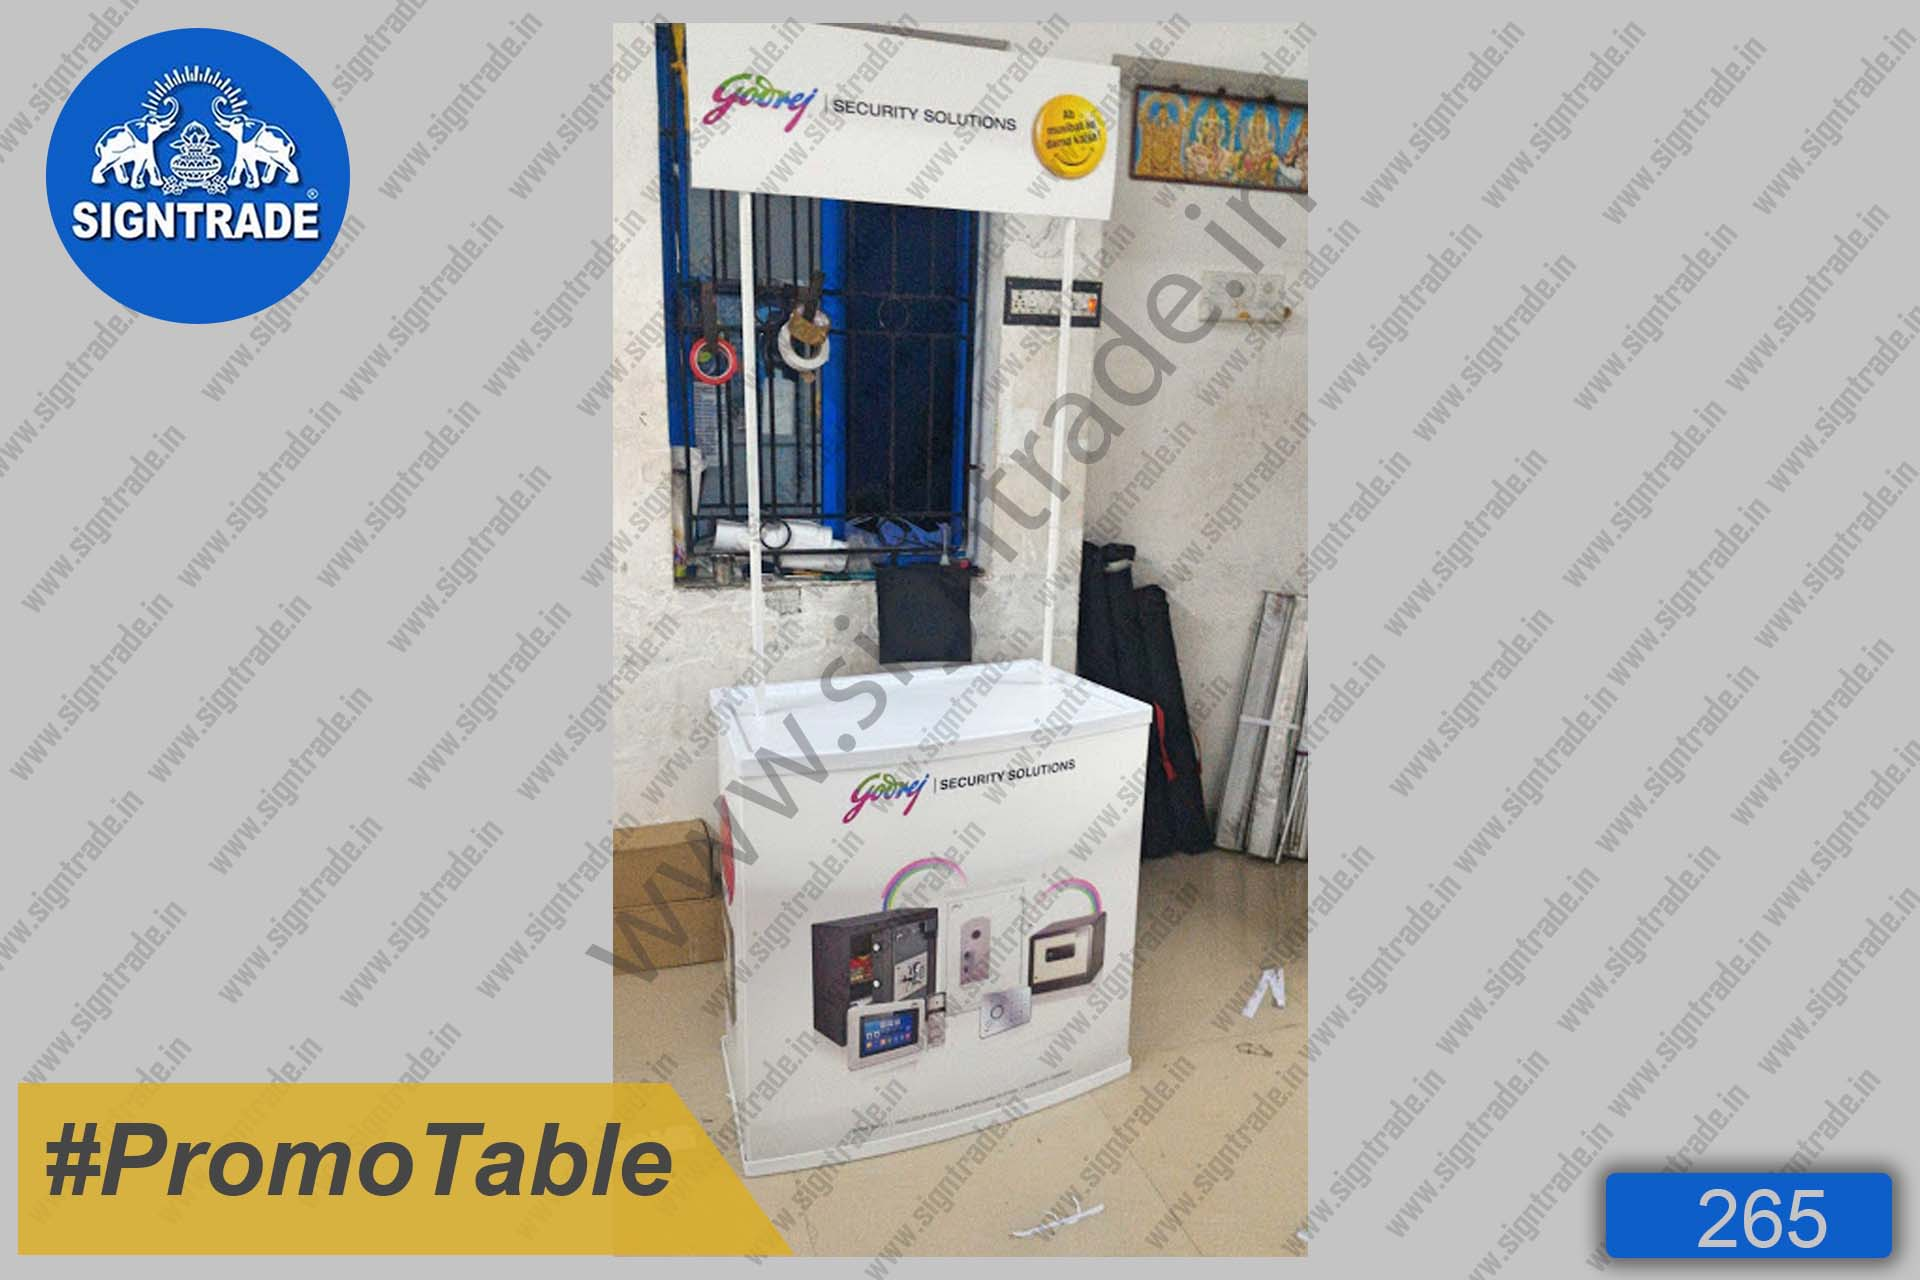 Godrej Security Solutions - Promotional Table